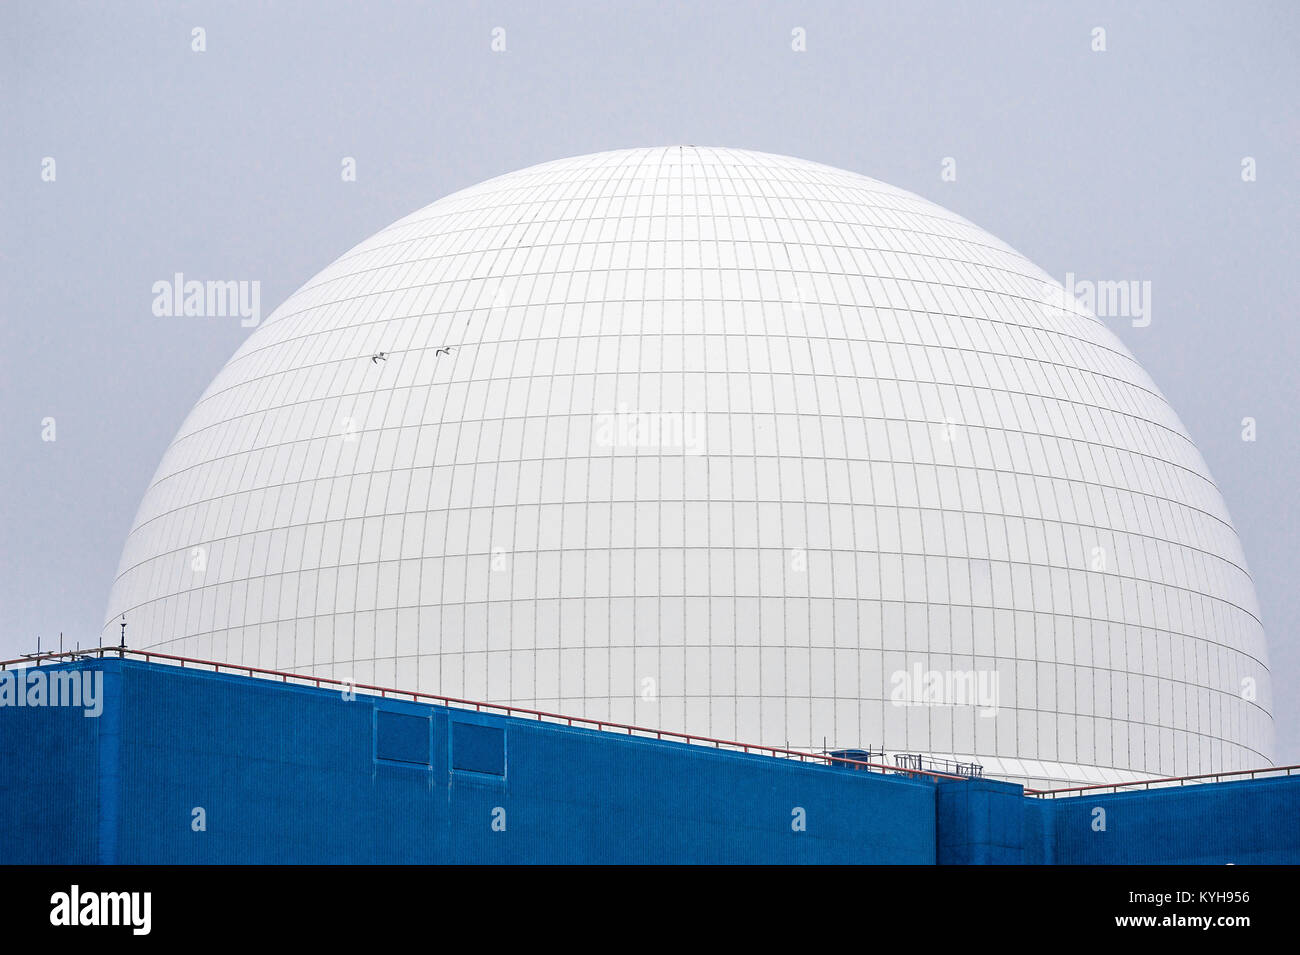 The dome of the Sizewell B nuclear power station on the Suffolk coast, England. - Stock Image